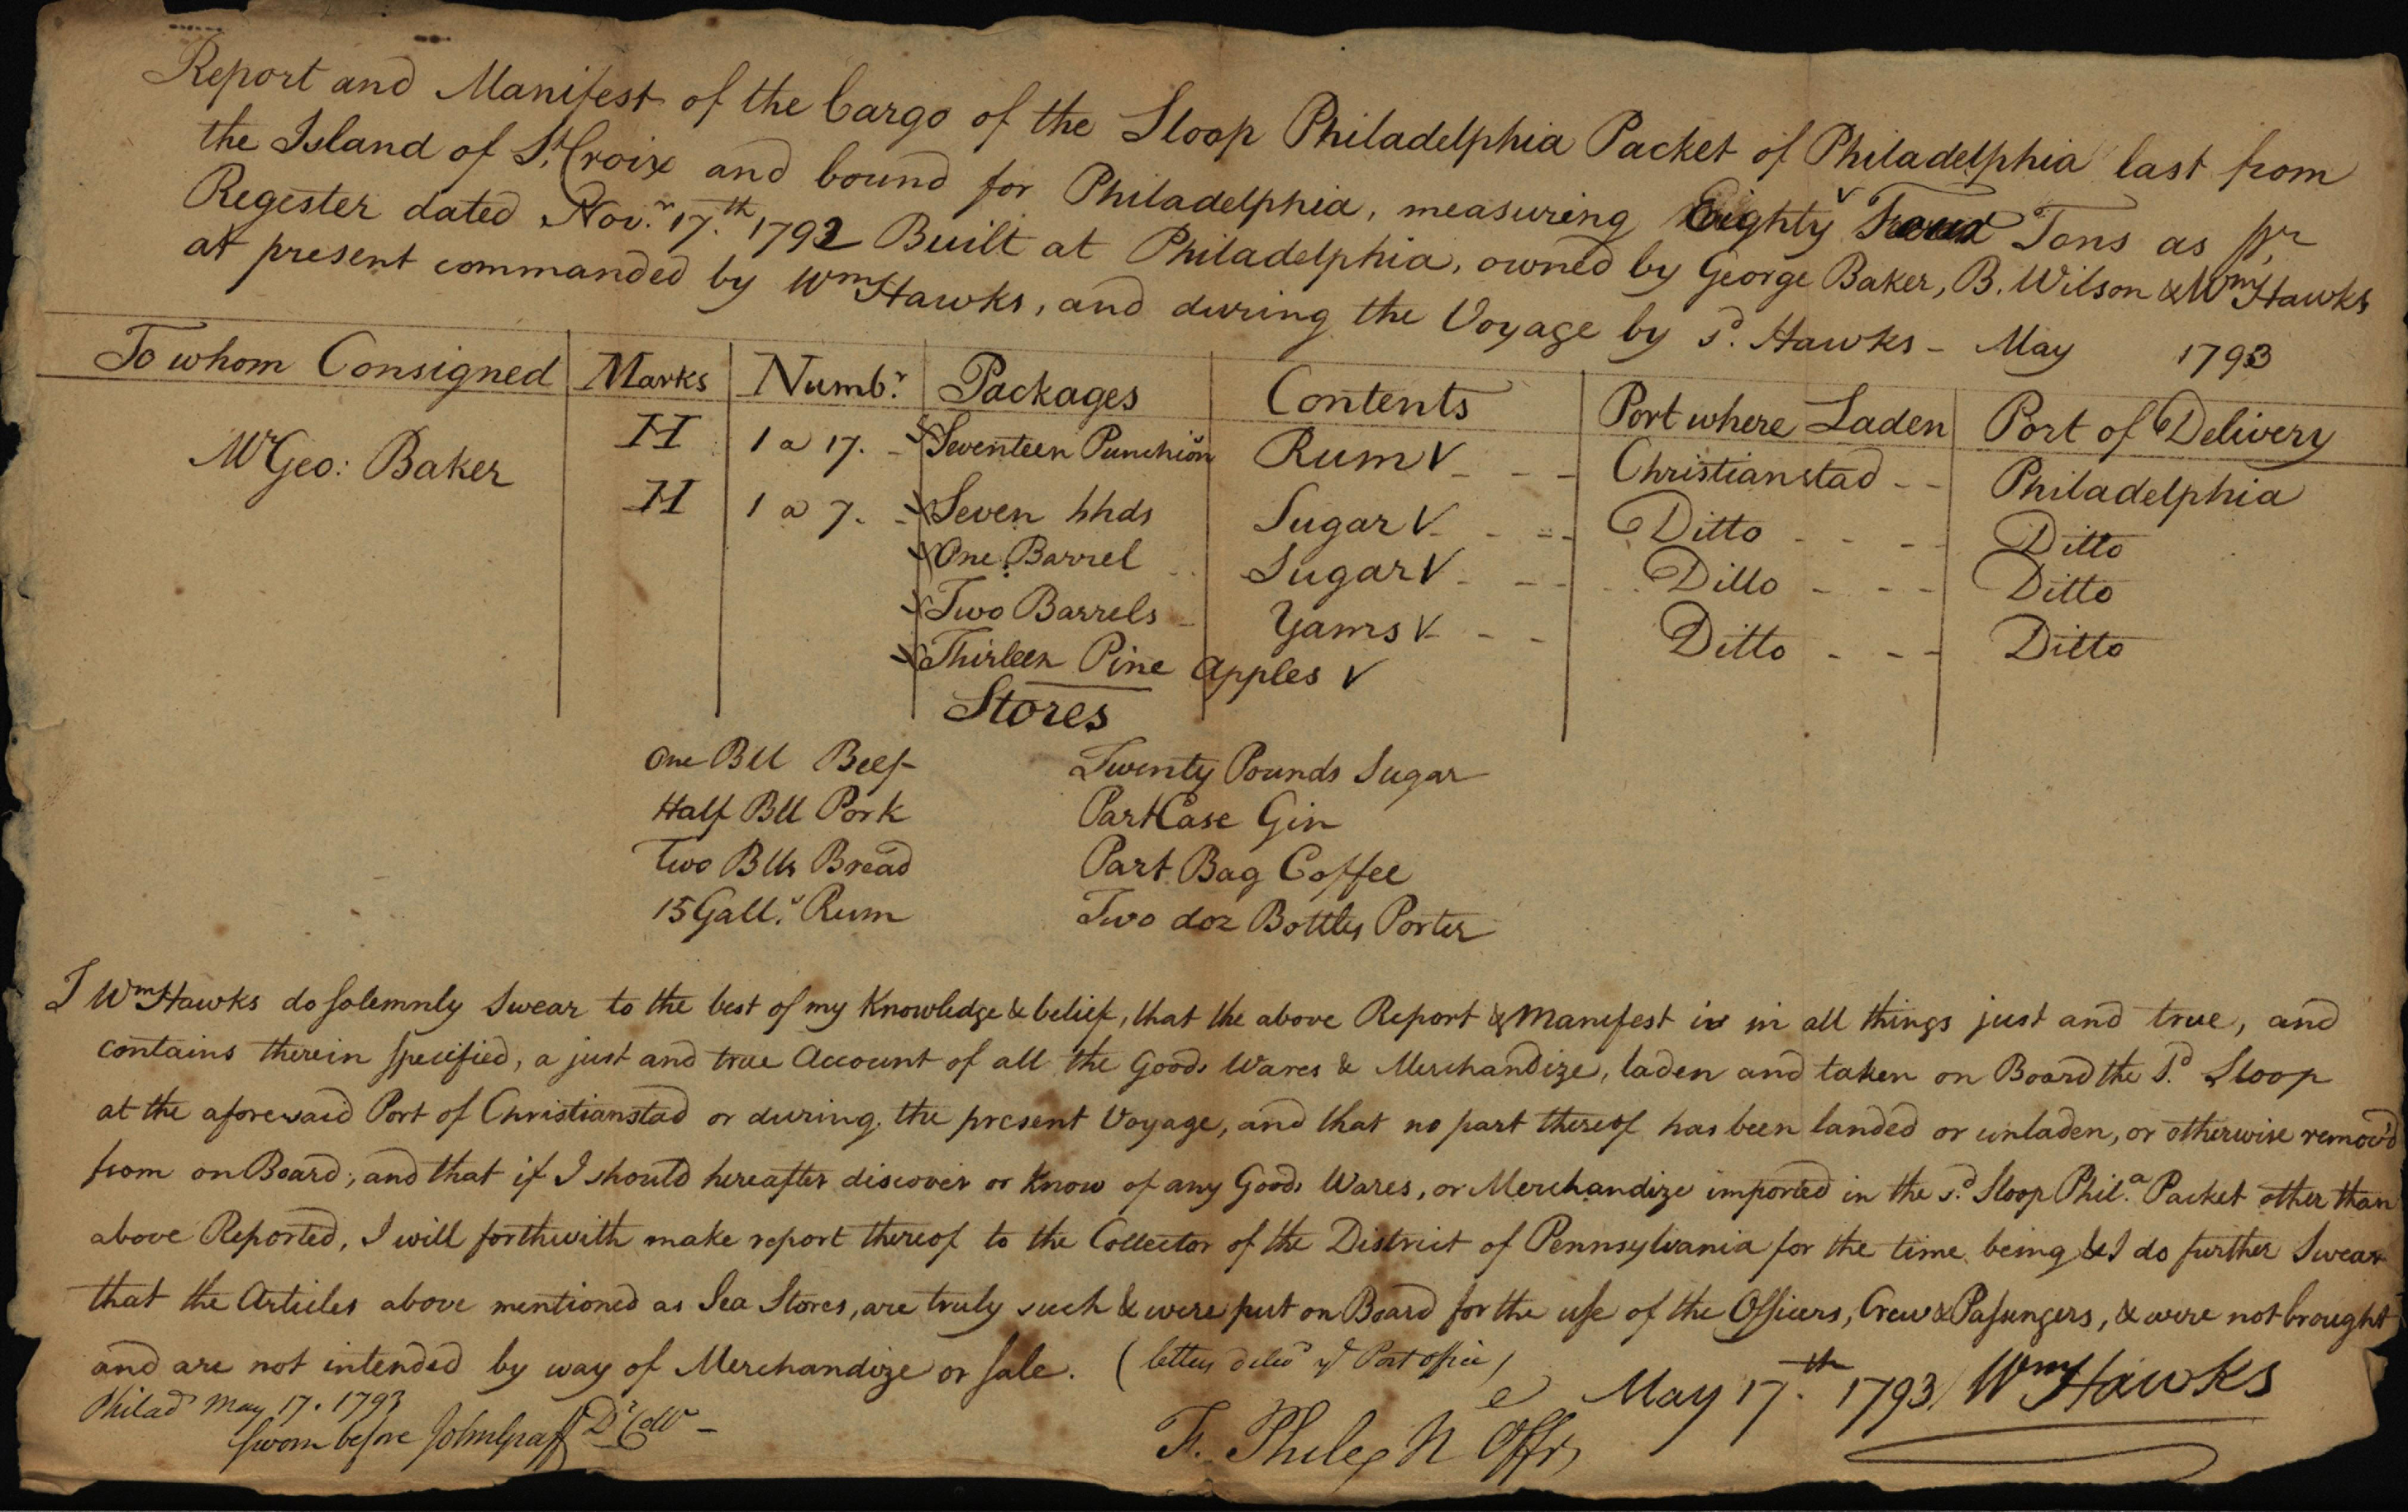 Report and Manifest of Cargo, 1793